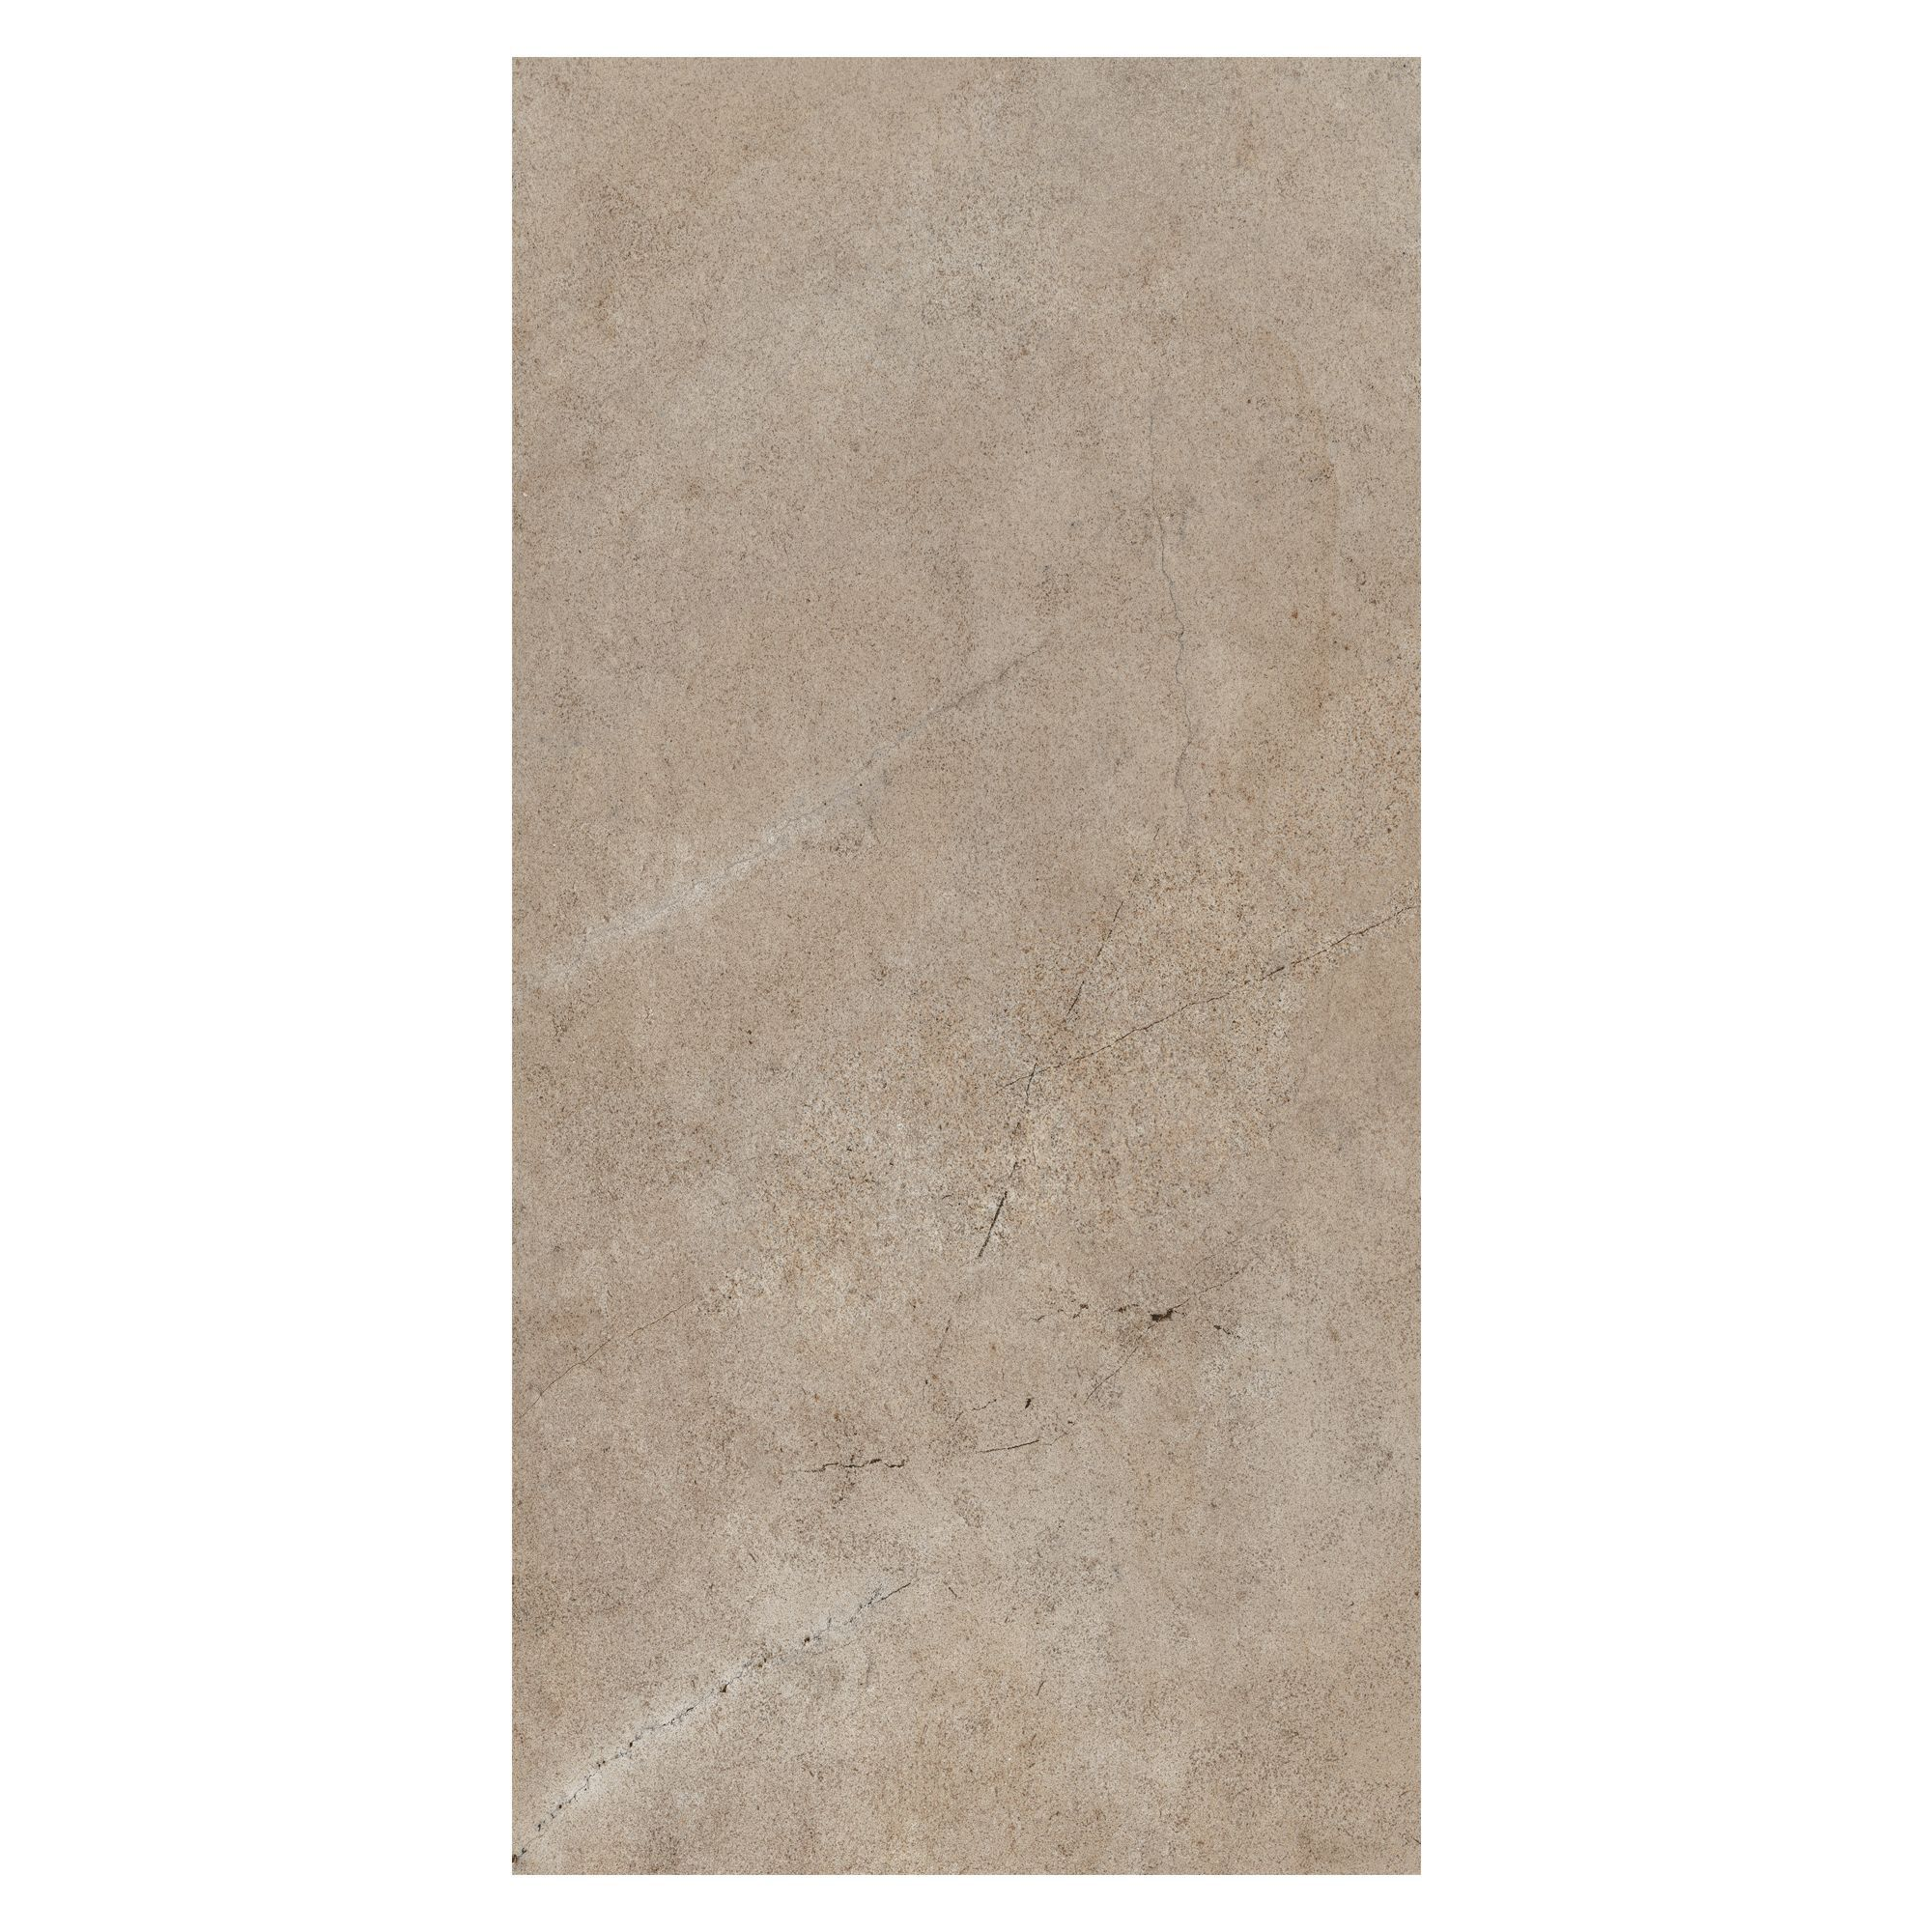 Legend taupe stone effect ceramic wall tile pack of 8 l 500mm w 250mm departments diy at b q - Wall taupe ...